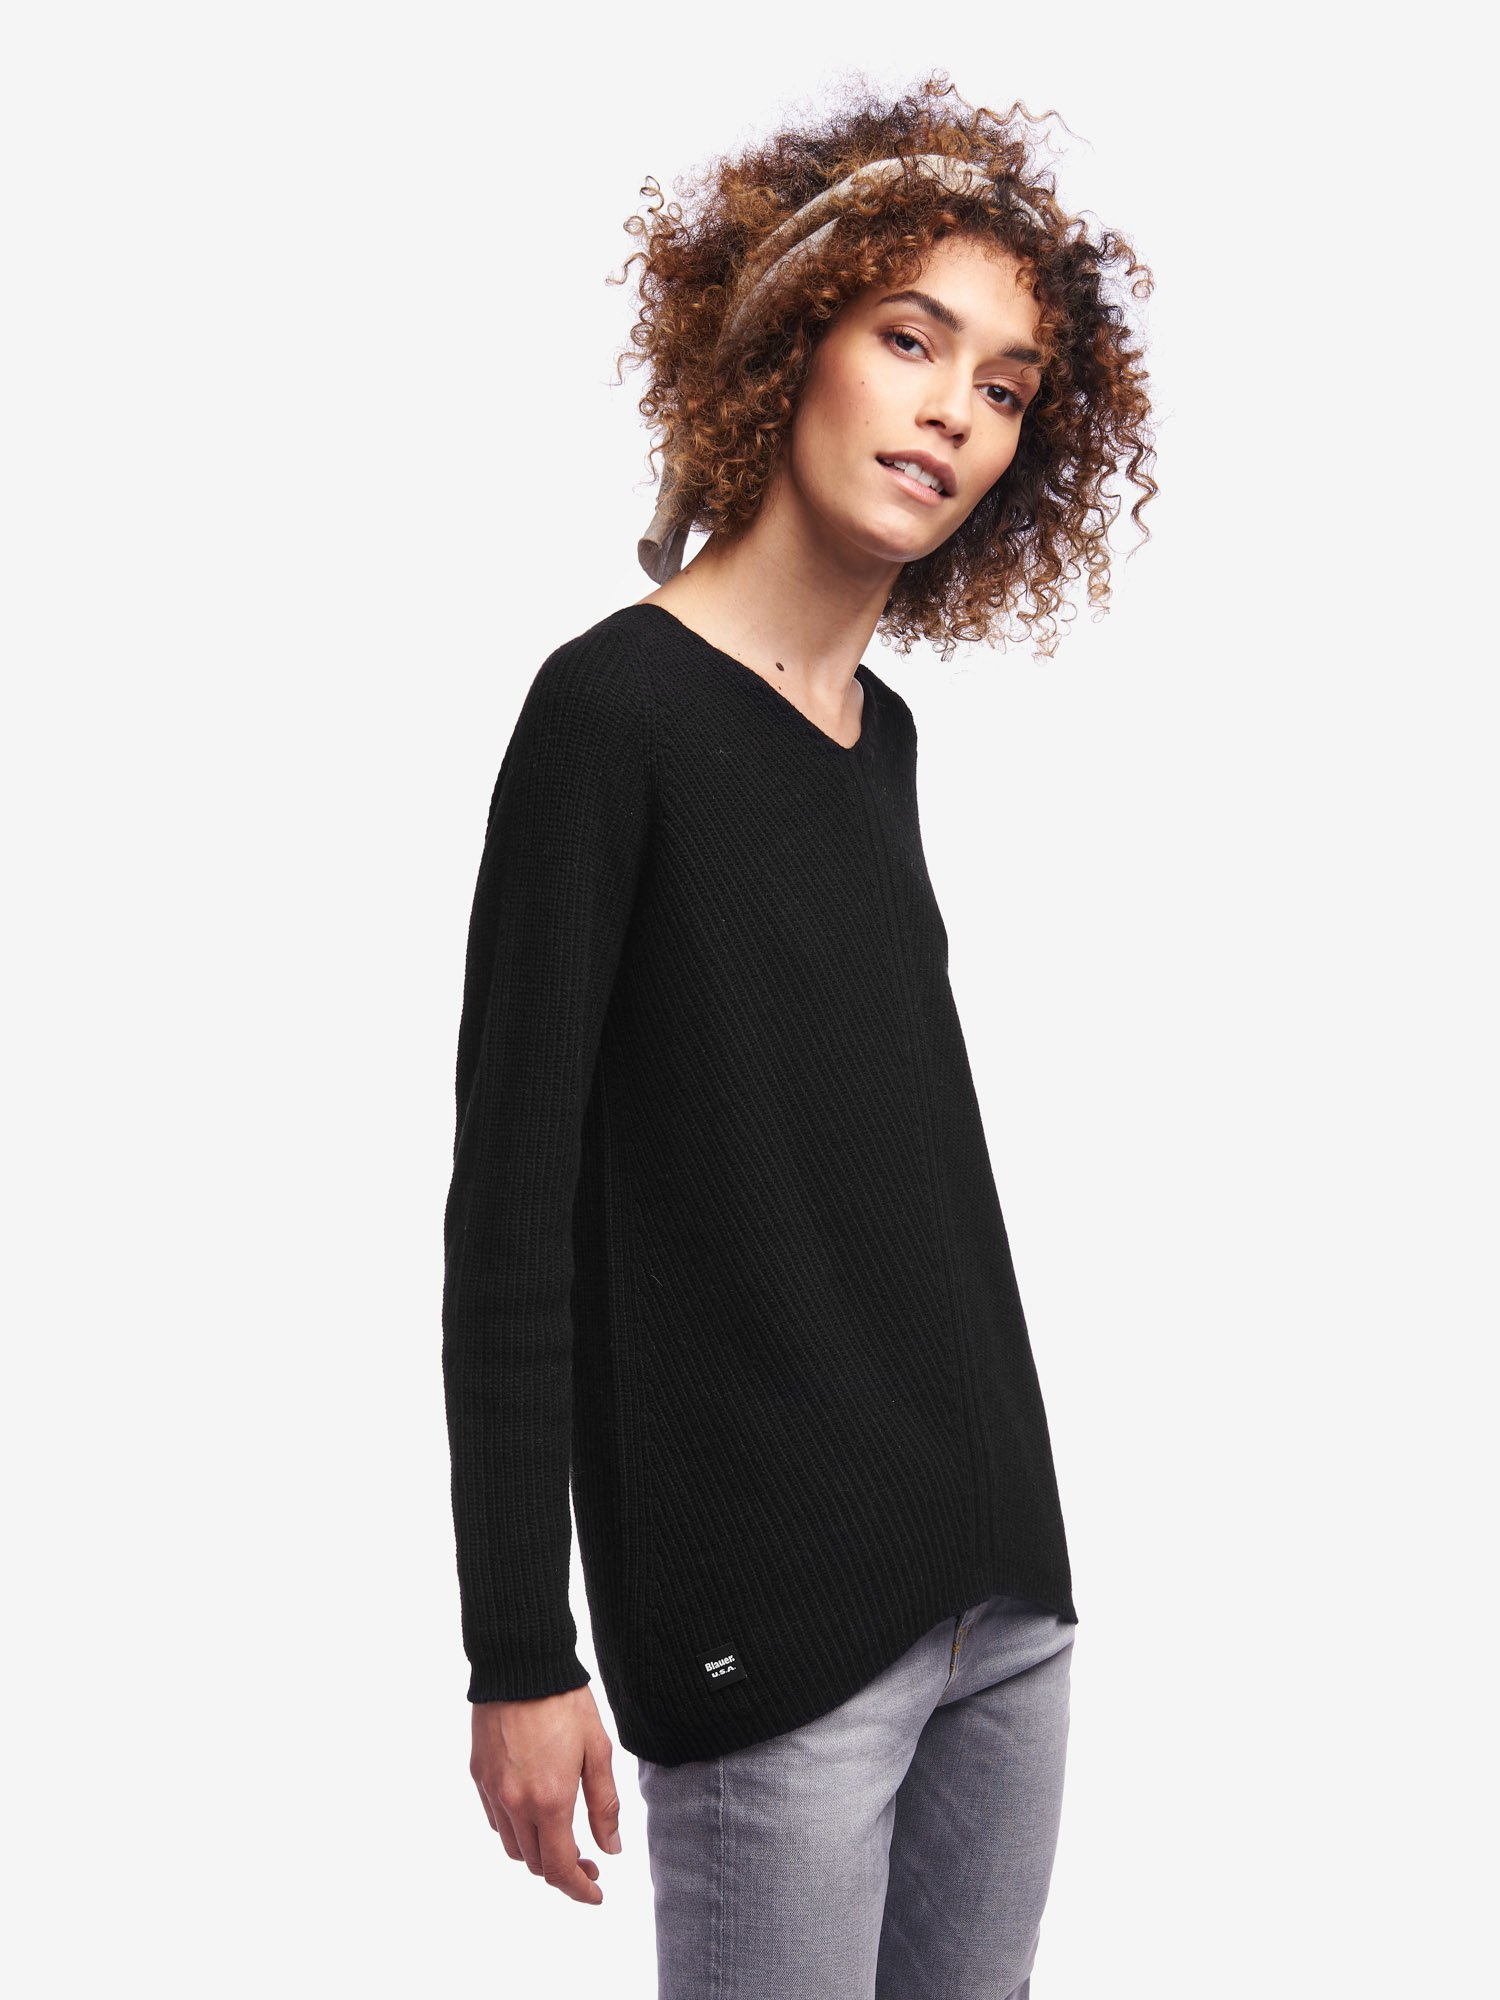 V-NECK SWEATER - Blauer